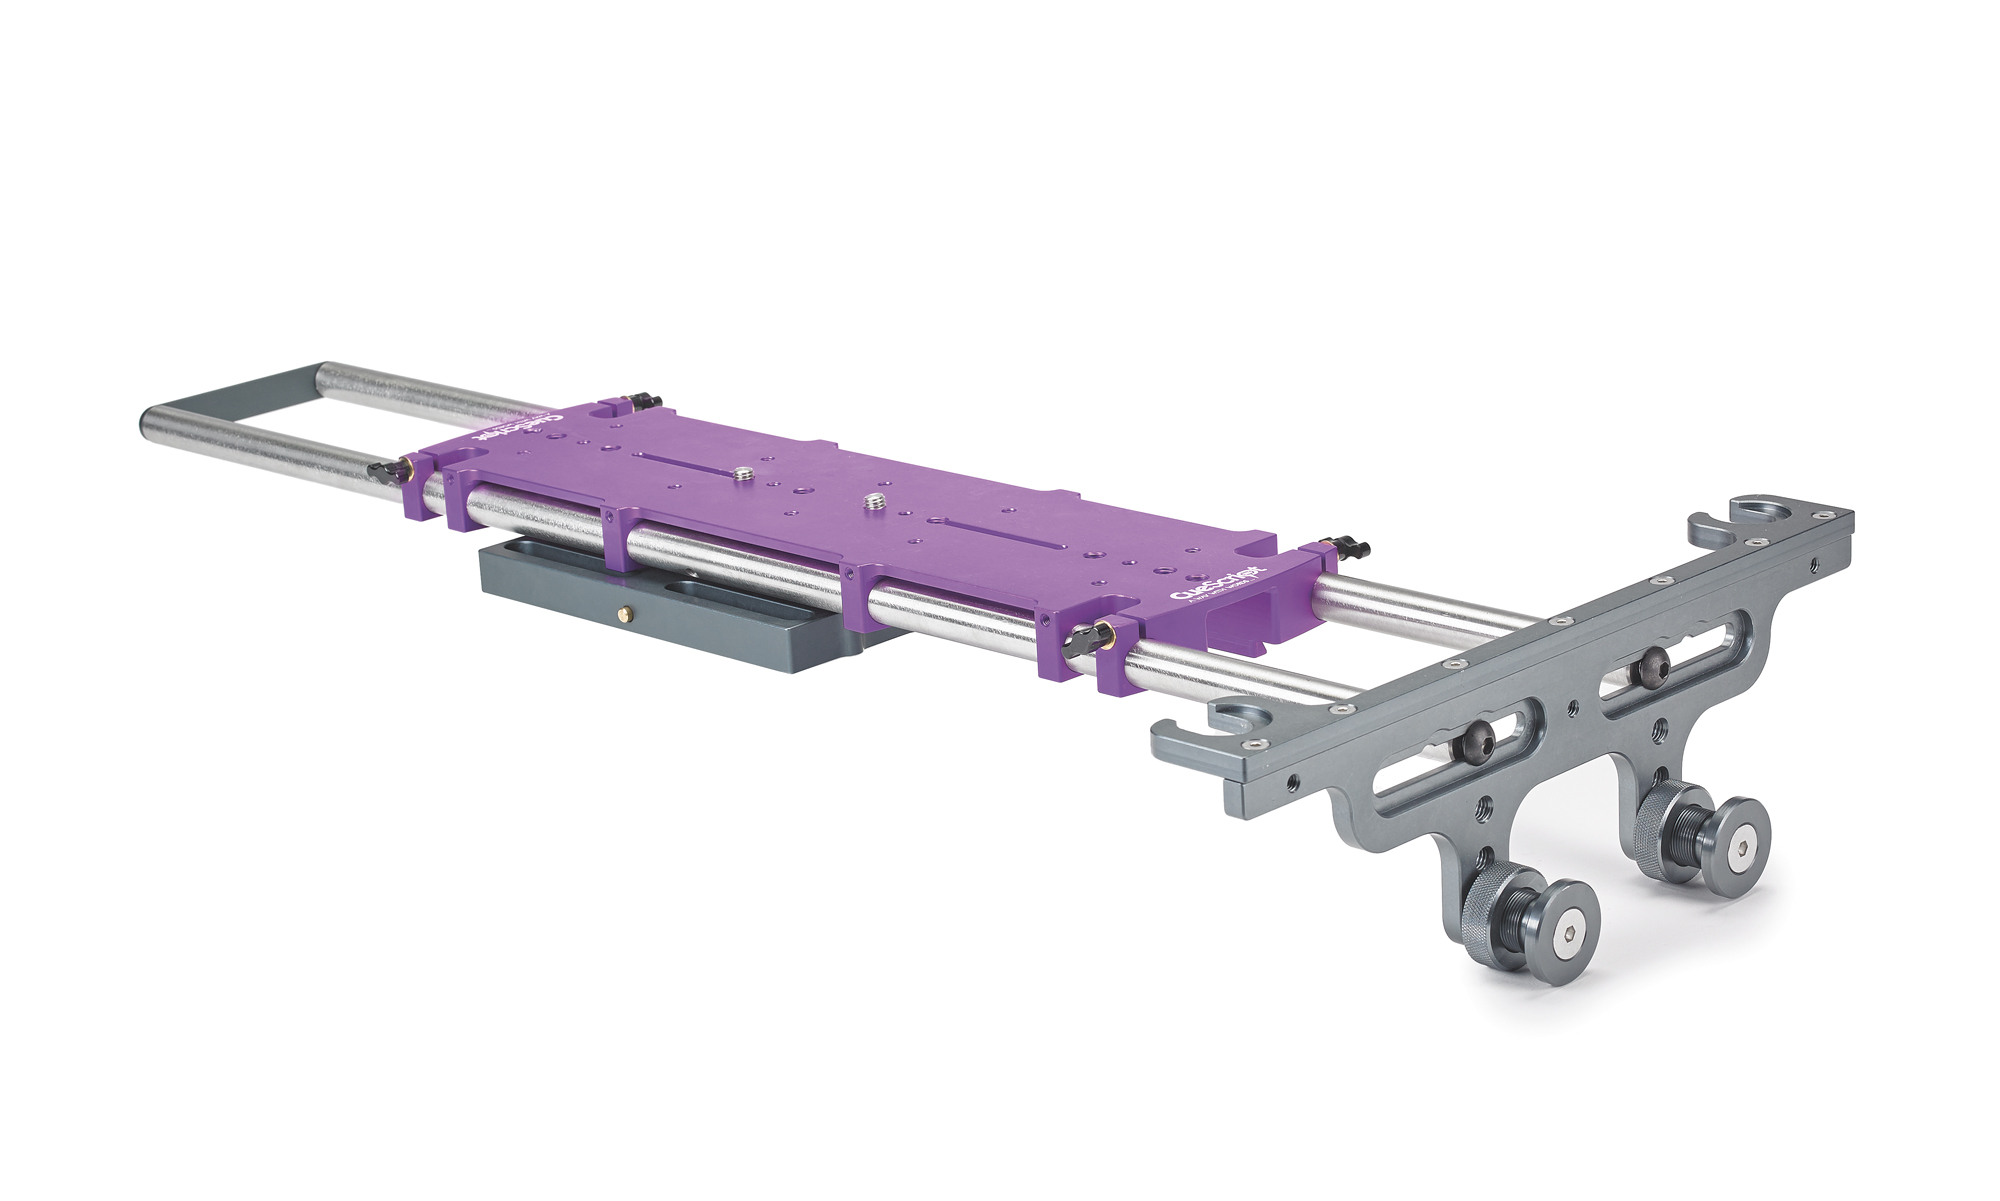 CSMPXL - Extra-large mount Purple Plate